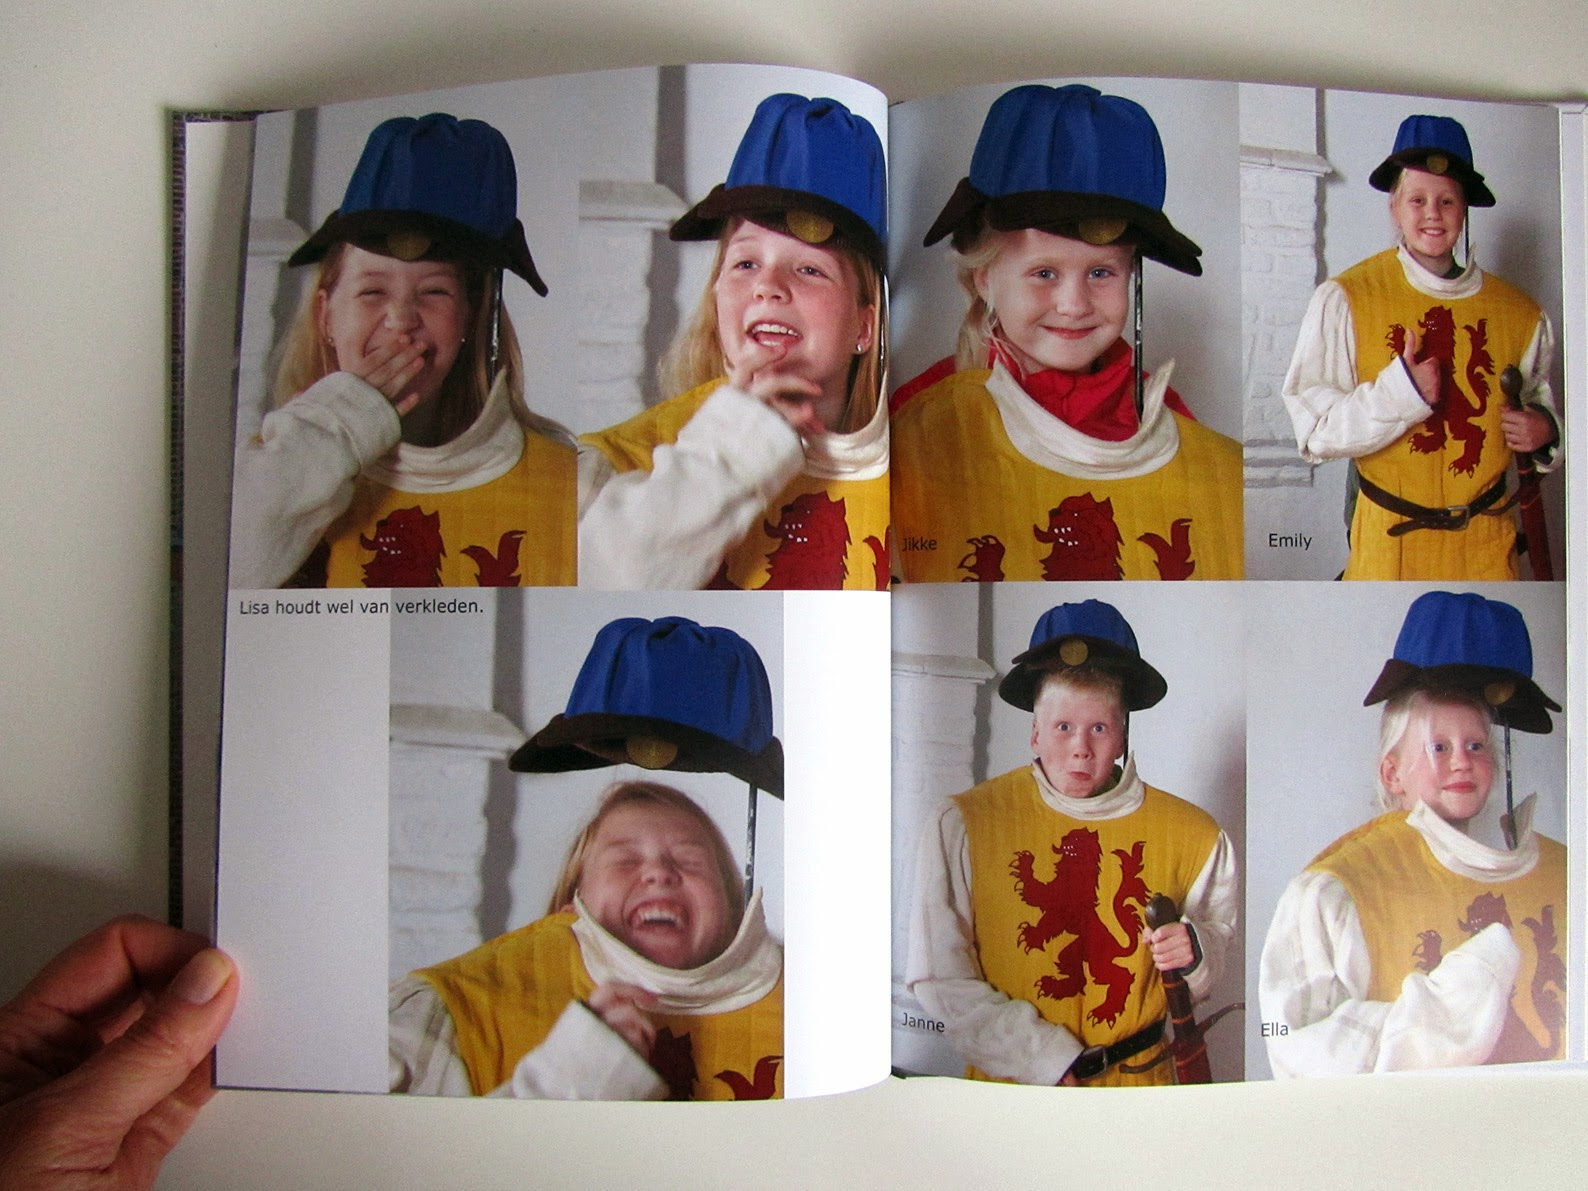 inside photo book: dressing up